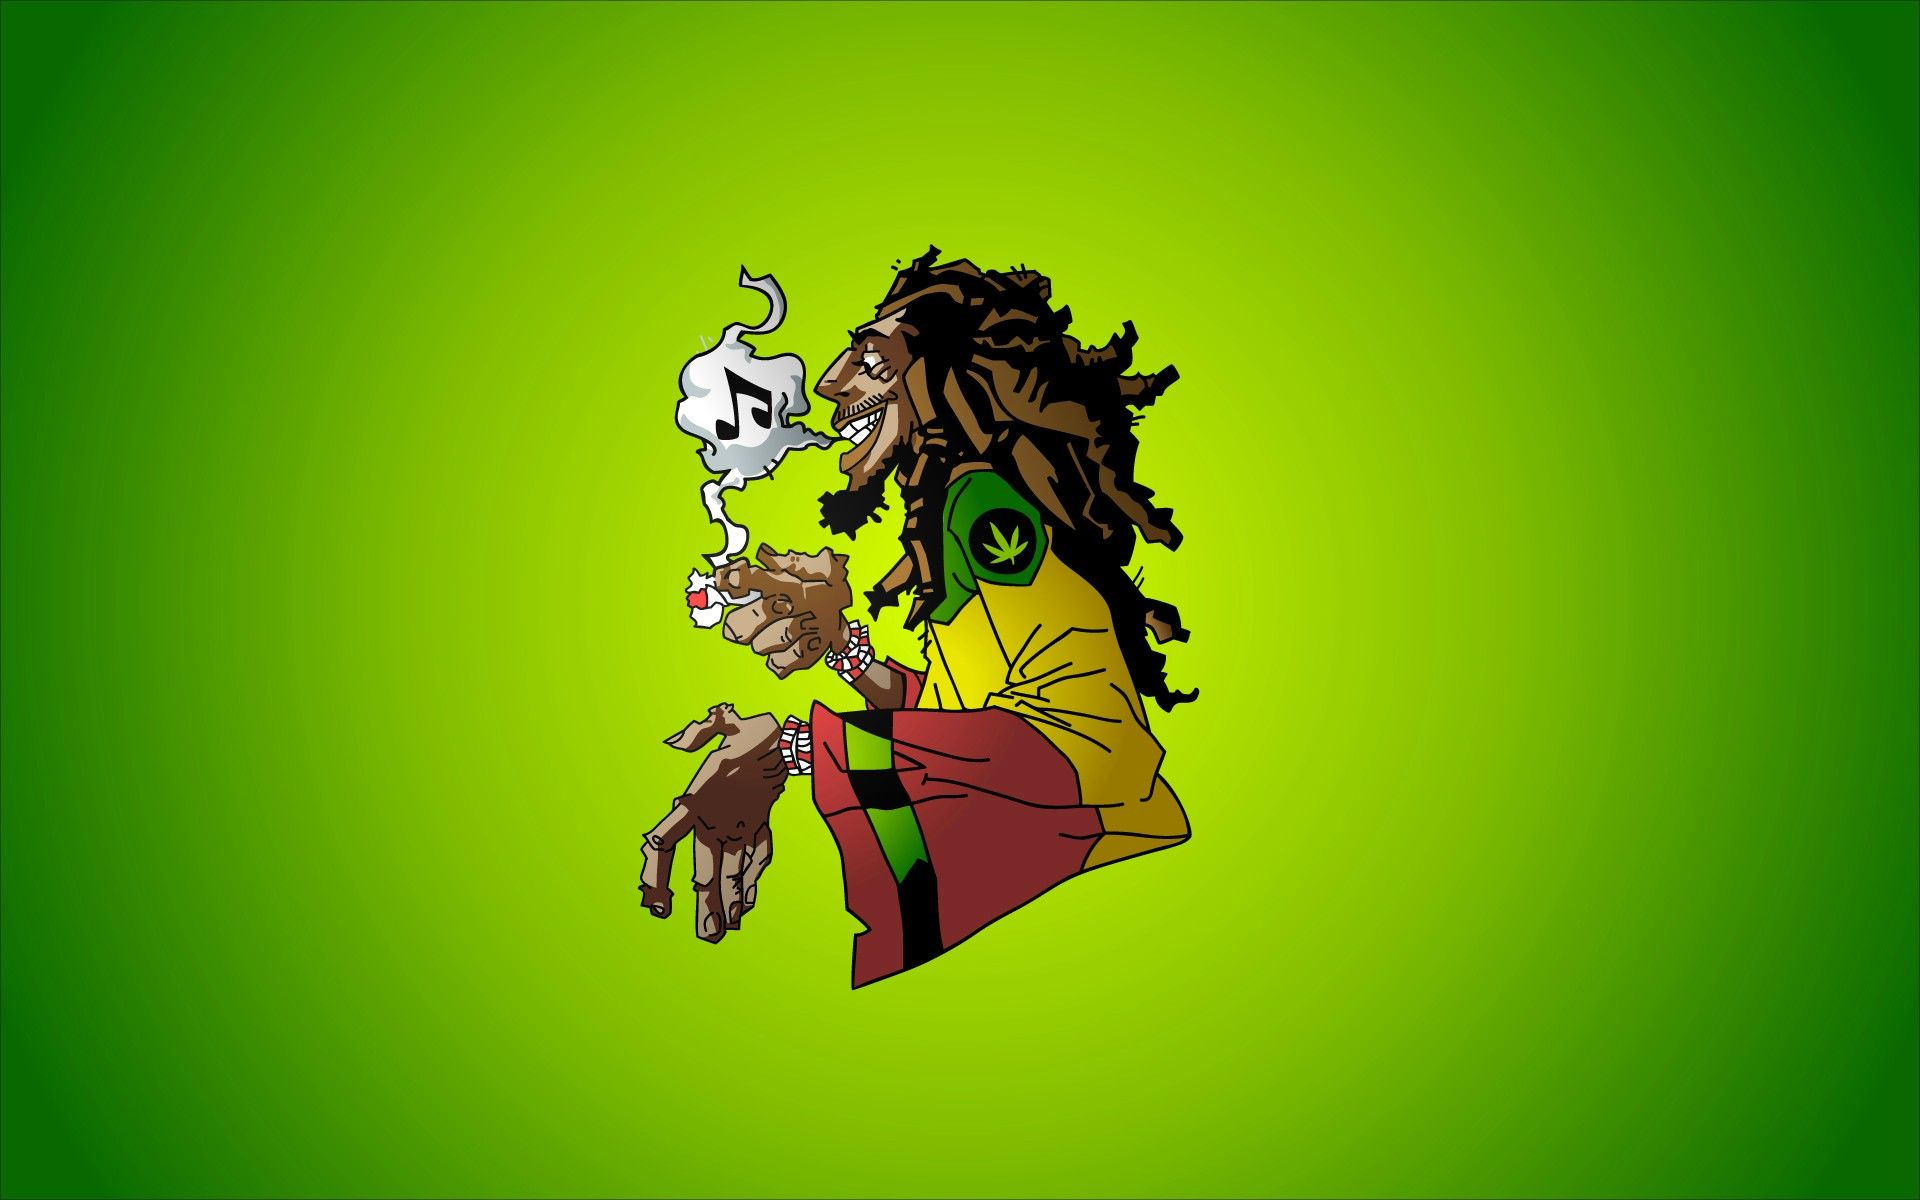 Cool Weed Wallpapers